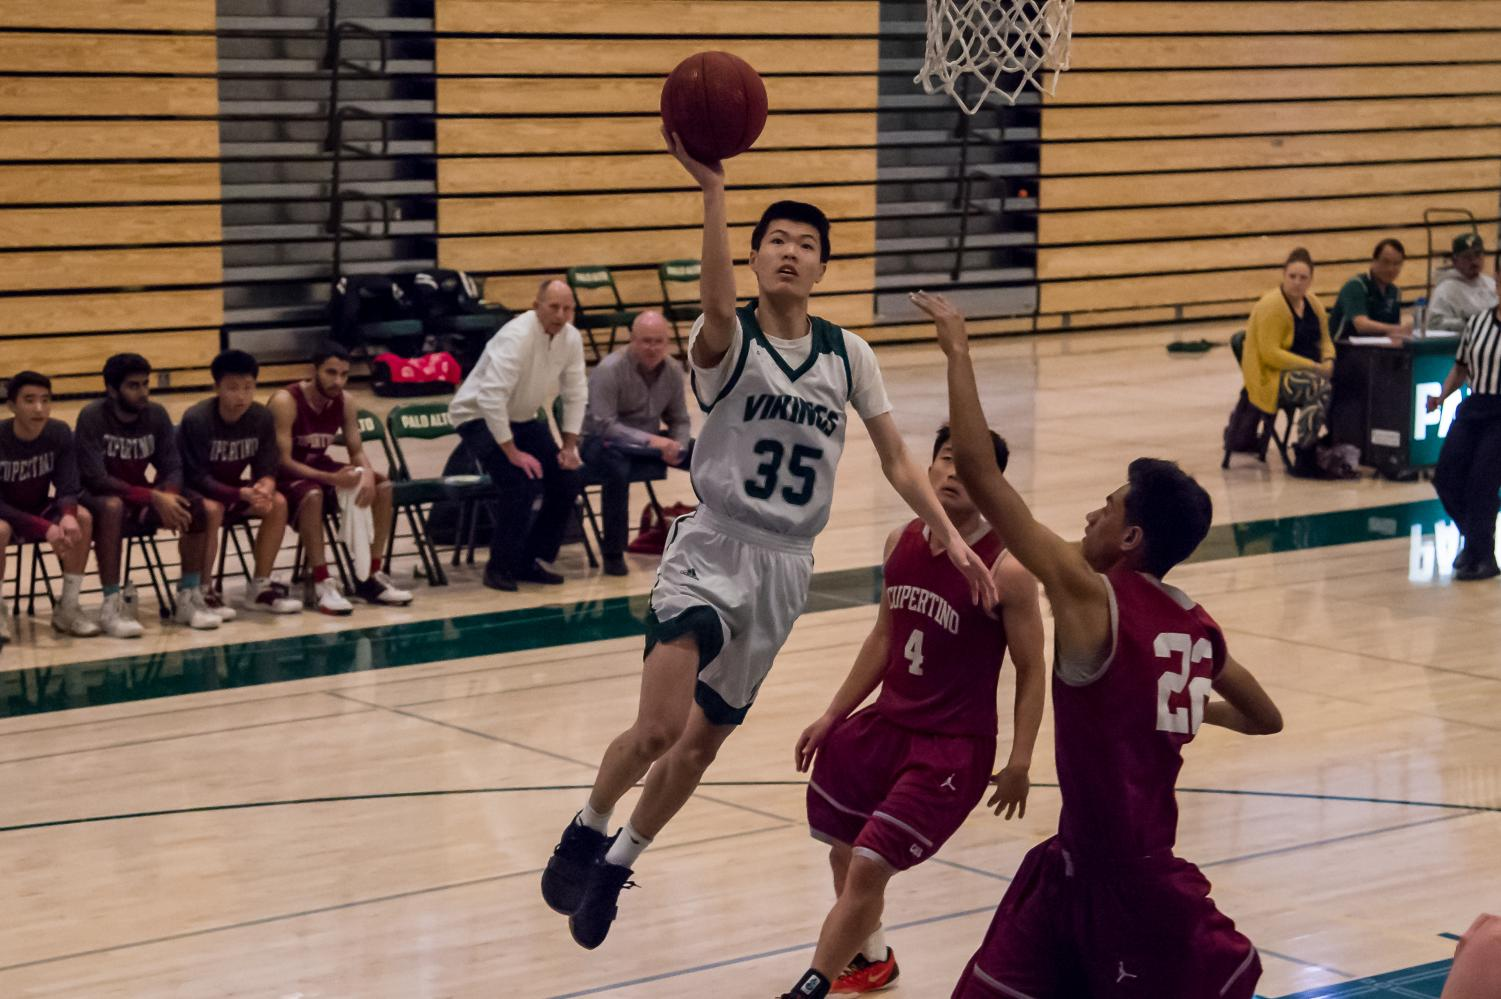 Marvin Zou ('19) elevates past defenders to lay the ball in.